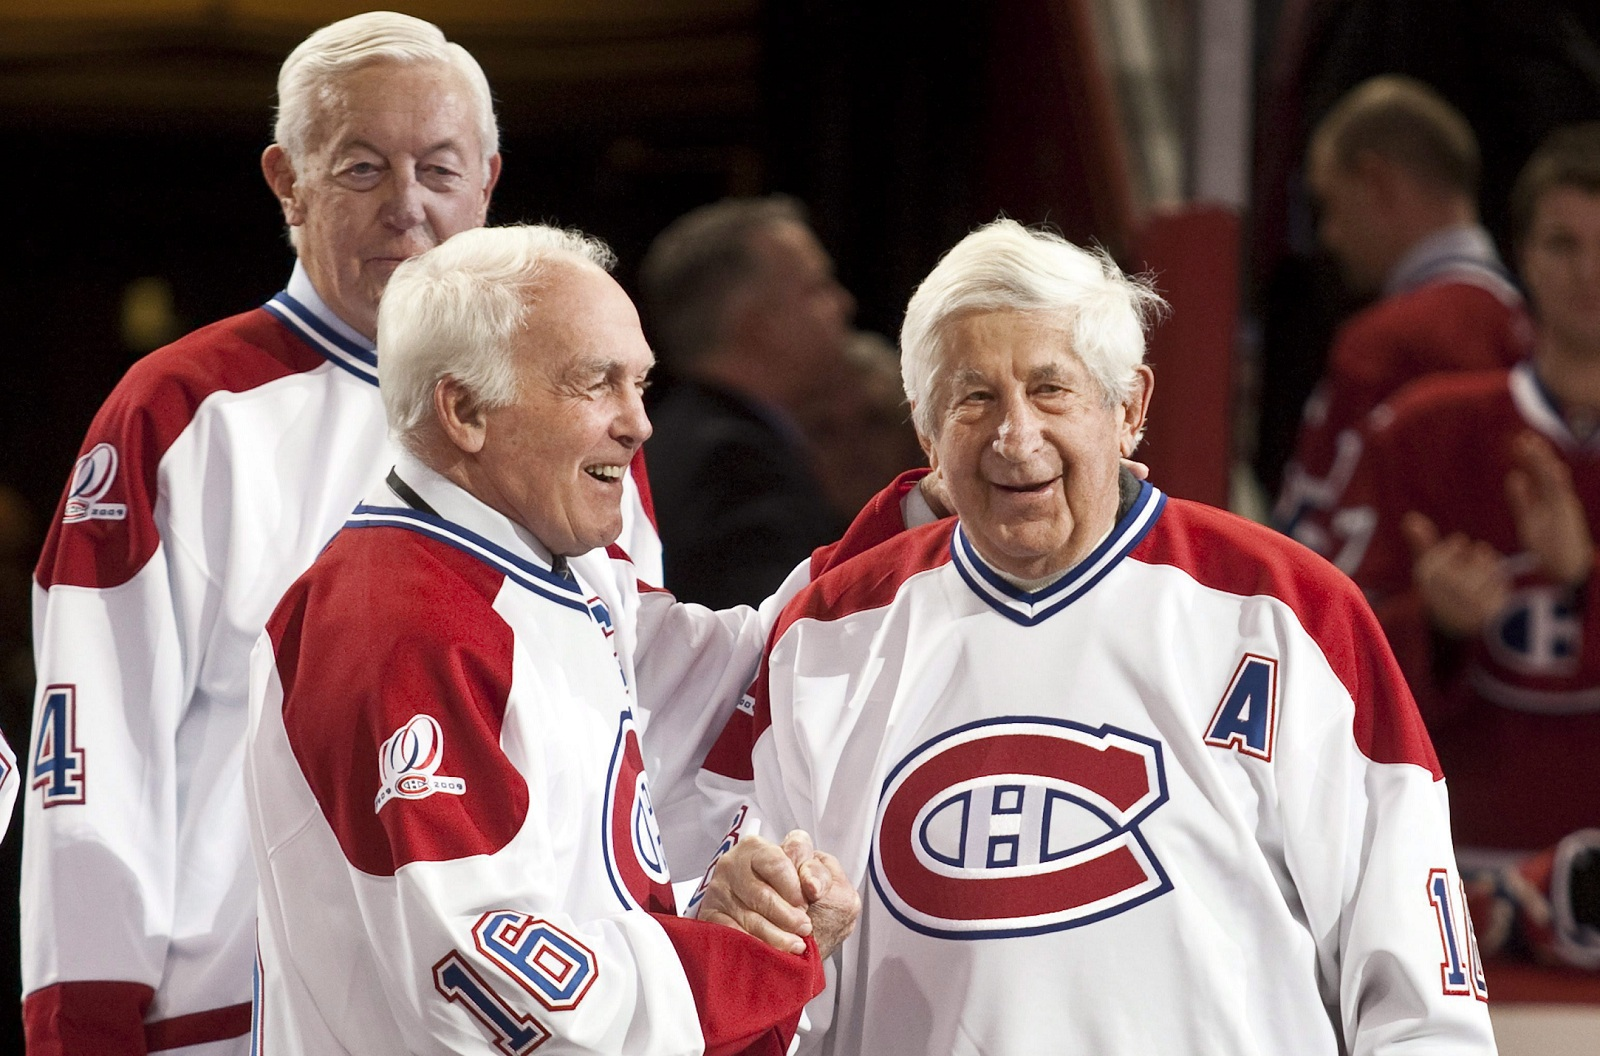 Former Montreal Canadien Henri Richard greets Elmer Lach, right as Jean Beliveau, rear, looks on during NHL centennial celebrations in 2009